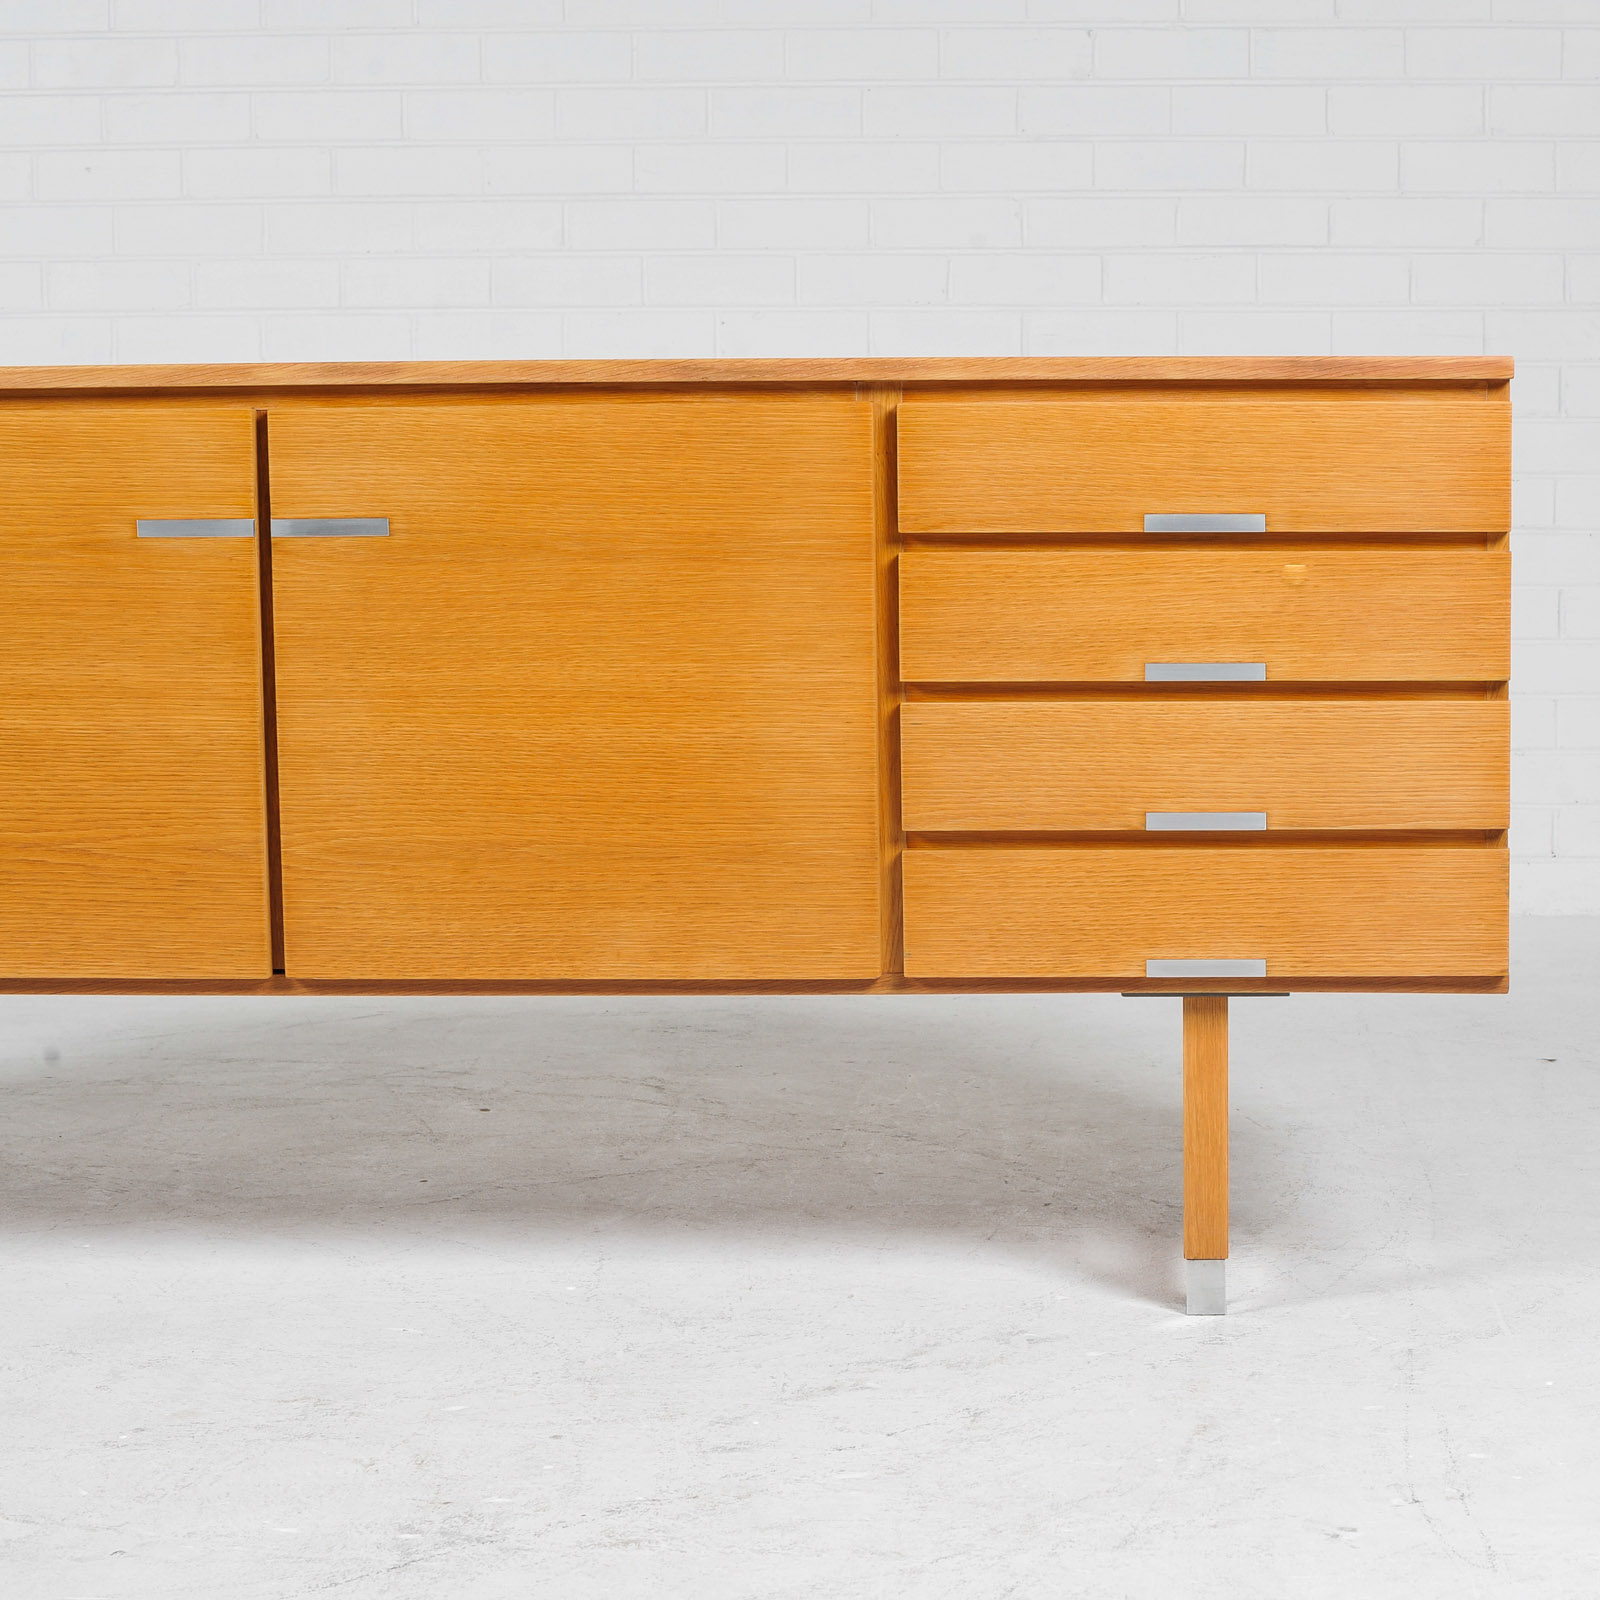 Sideboard By Kai Kristiansen For Fm Mobler In Oak With Polished Aluminium Details 1960s Denmark 04